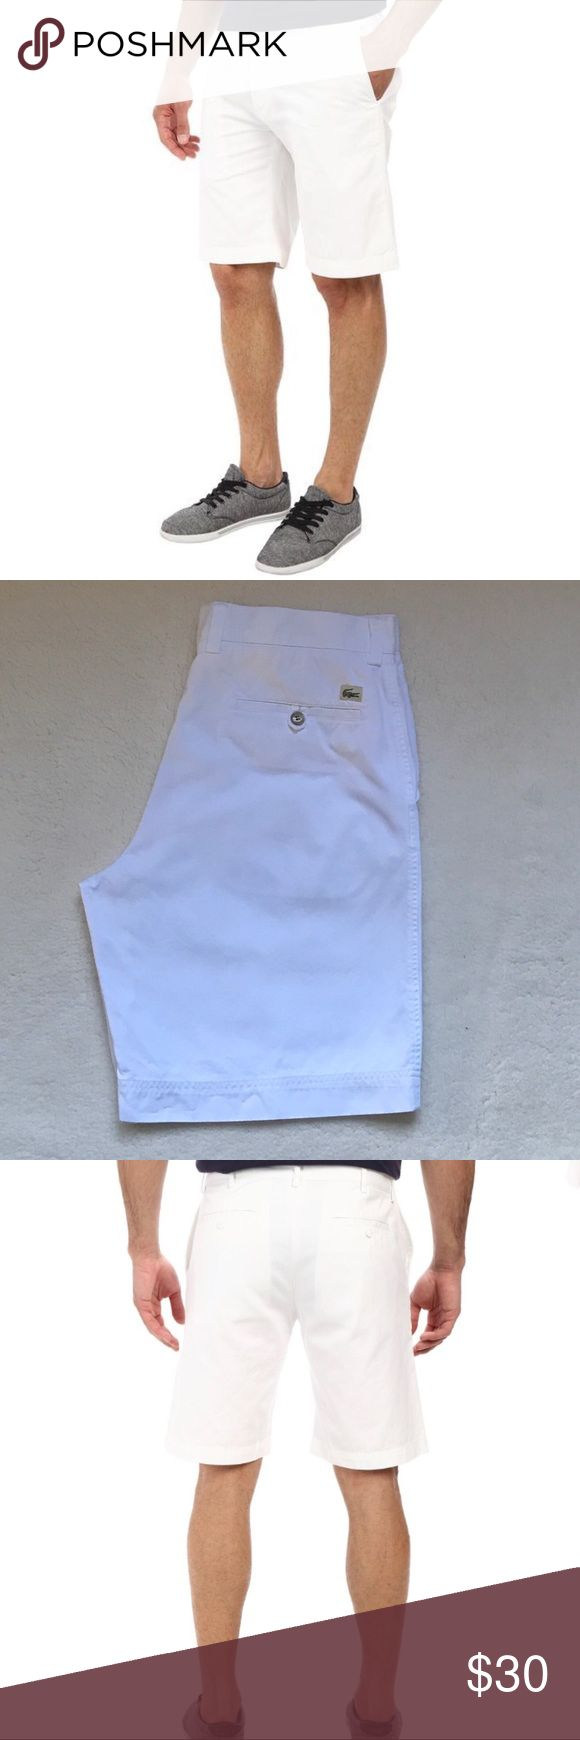 Mens Lacoste White Classic Bermuda Shorts 34 44 Mens Lacoste White Classic Bermuda Shorts 34 44  Nice pair of men's Lacoste Khaki shorts! Good Condition!   Size 44 which is equivalent to a men's 34. Inseam - 10in  If you have any questions please feel free to ask! Lacoste Shorts Flat Front